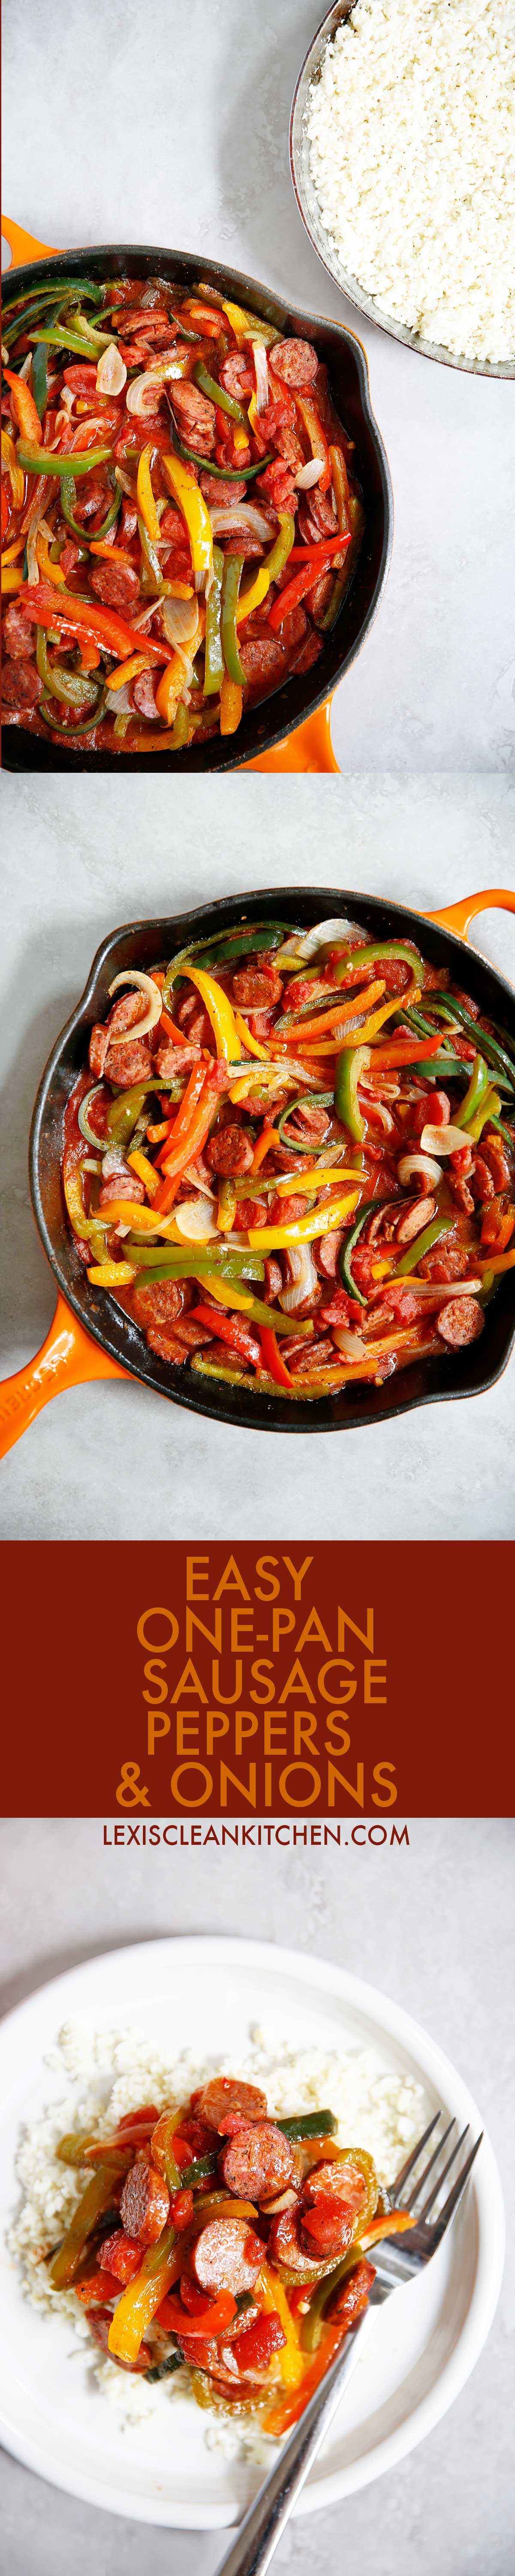 Sausage Peppers and Onions | Lexi's Clean Kitchen